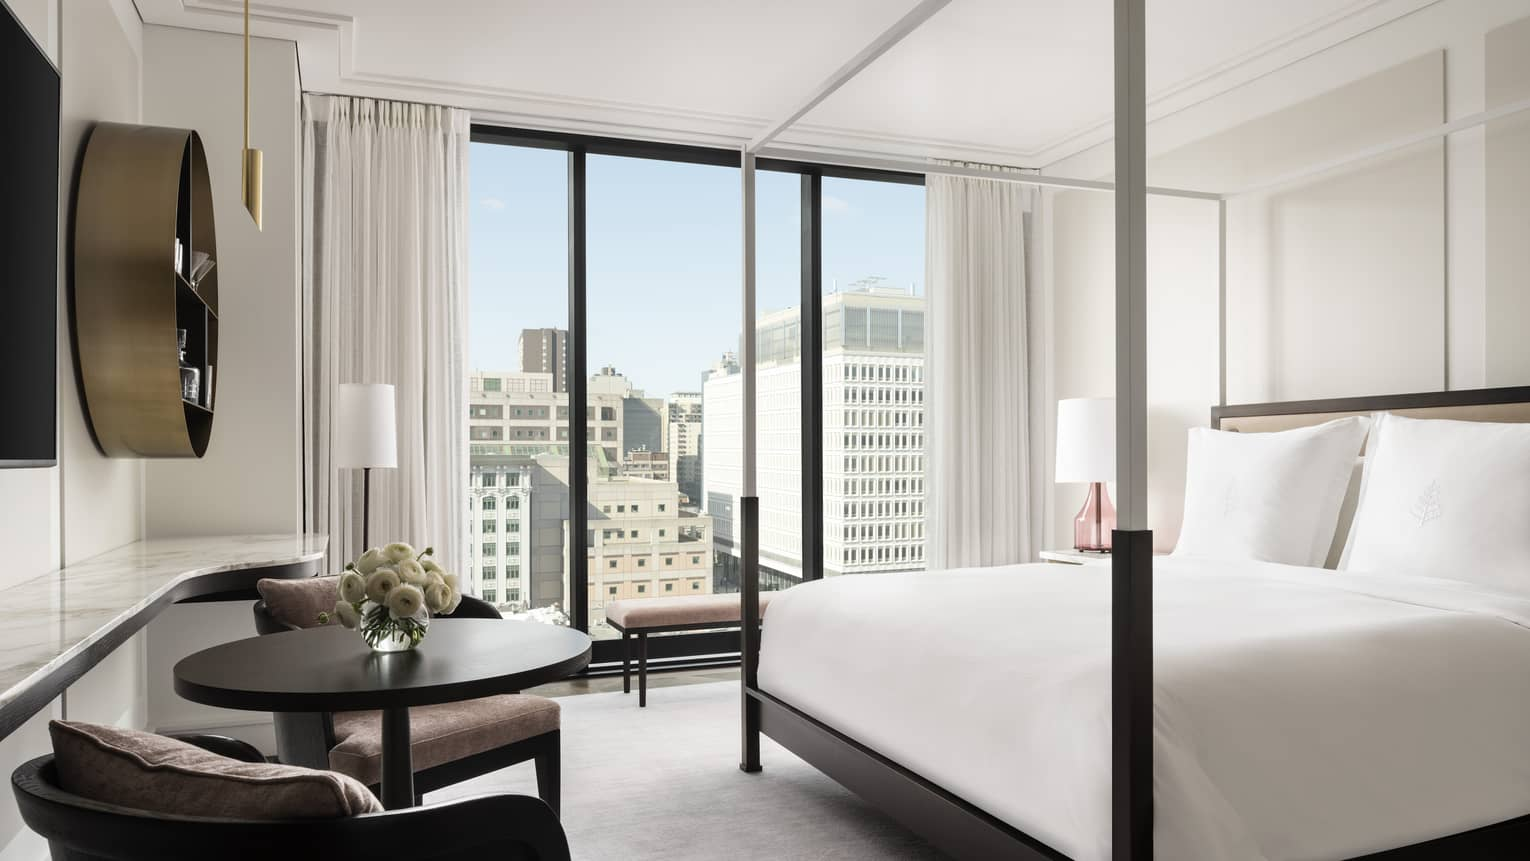 Superior King Room with modern four-poster bed in all-white room with conversation vignette and floor-to-ceiling windows with city views